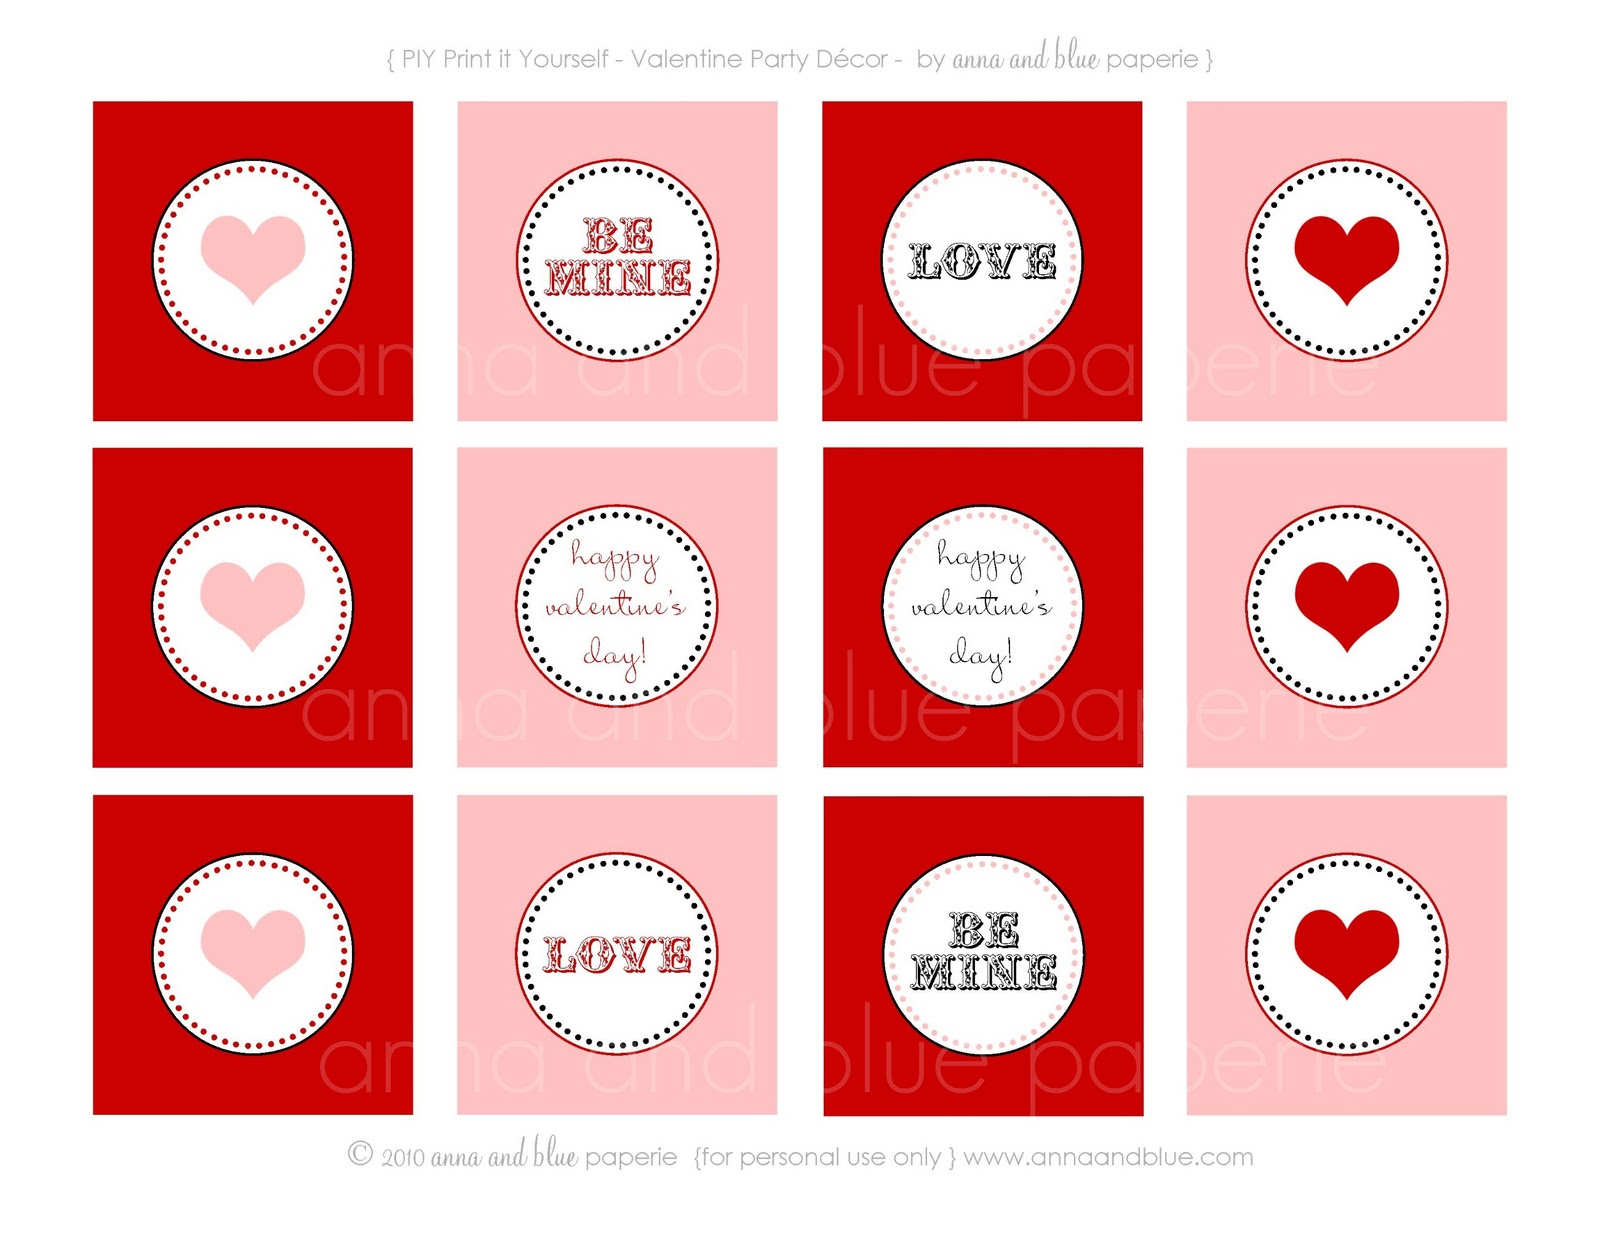 anna and blue paperie: {Free Printable} I Heart You ... Free Printable Valentine's Day Decorations